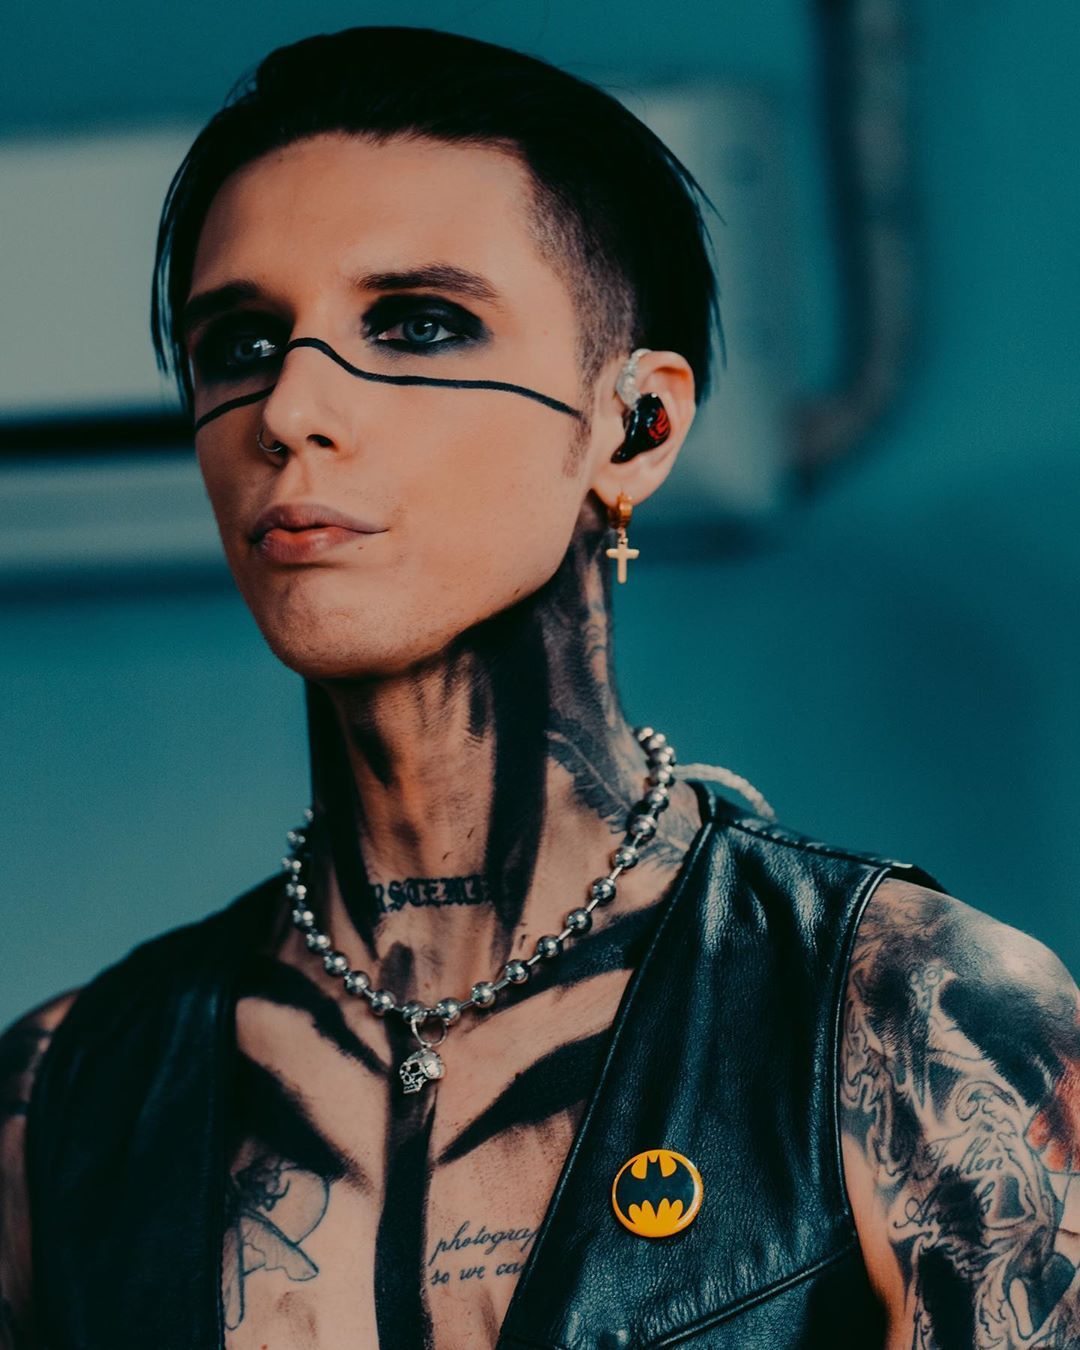 Pin by Cs on Andy biersack in 2020 | Black veil brides andy